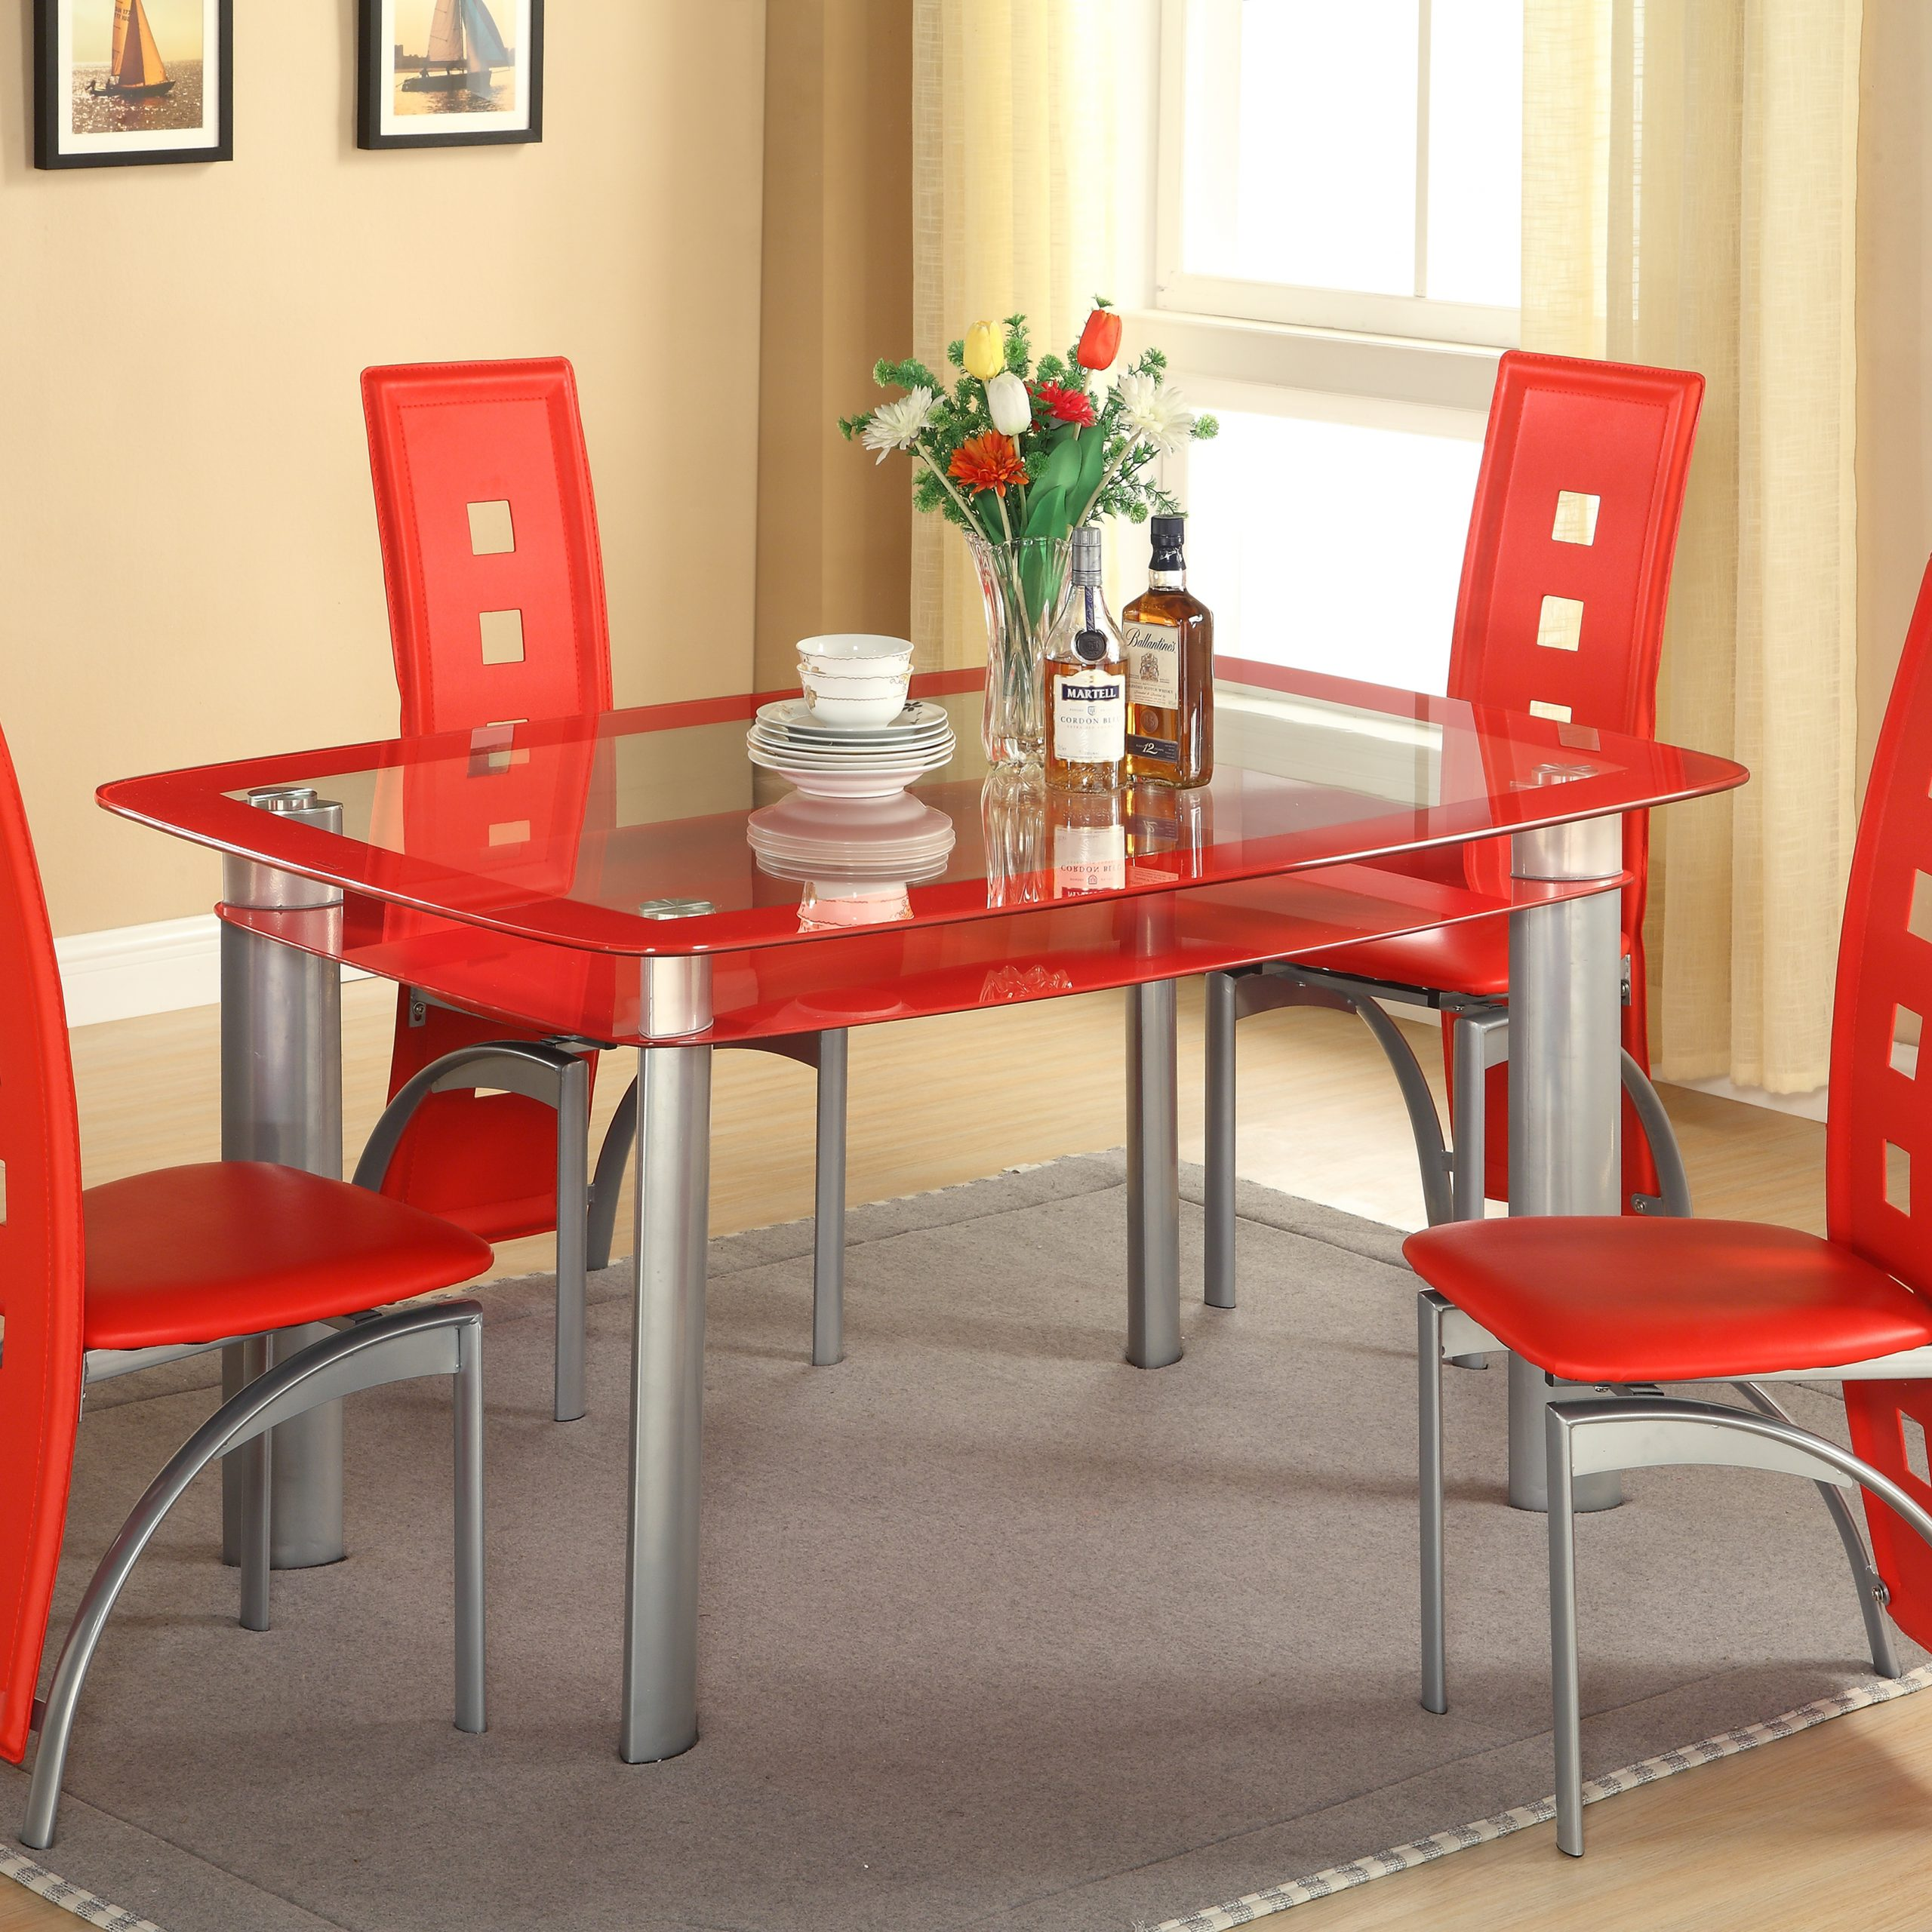 red dining table and chairs